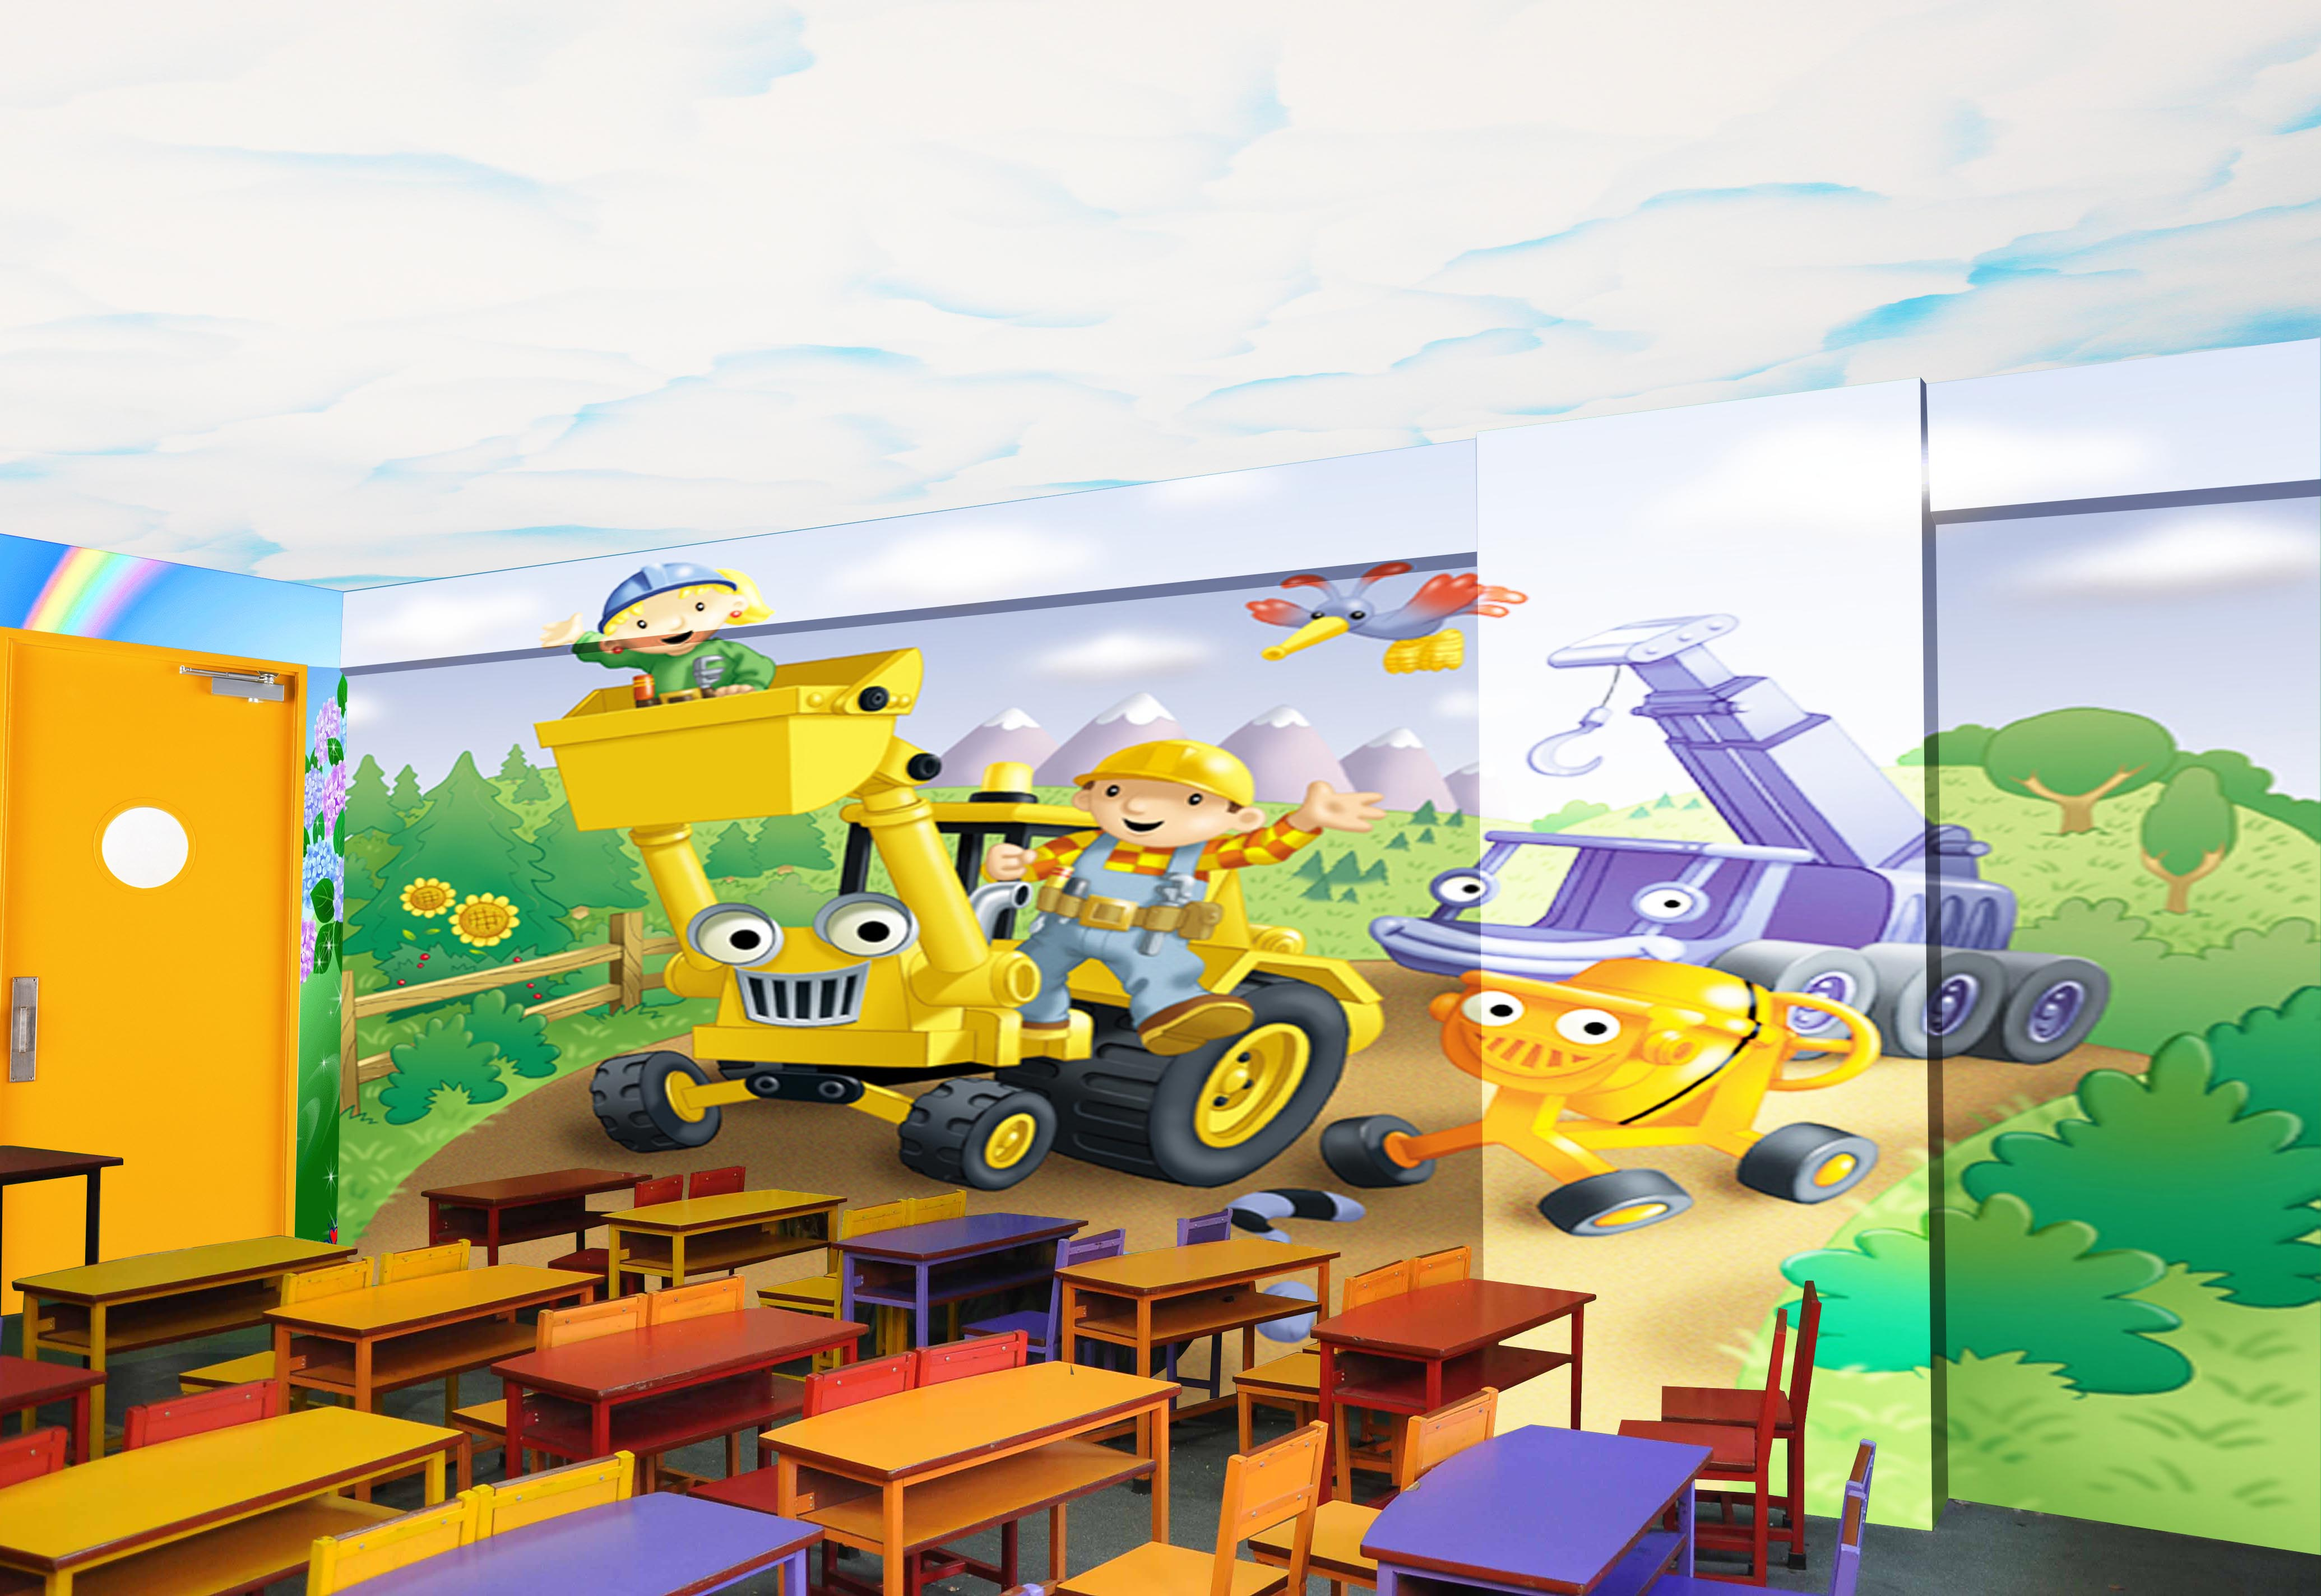 Kids school interior design - Kids School Arena